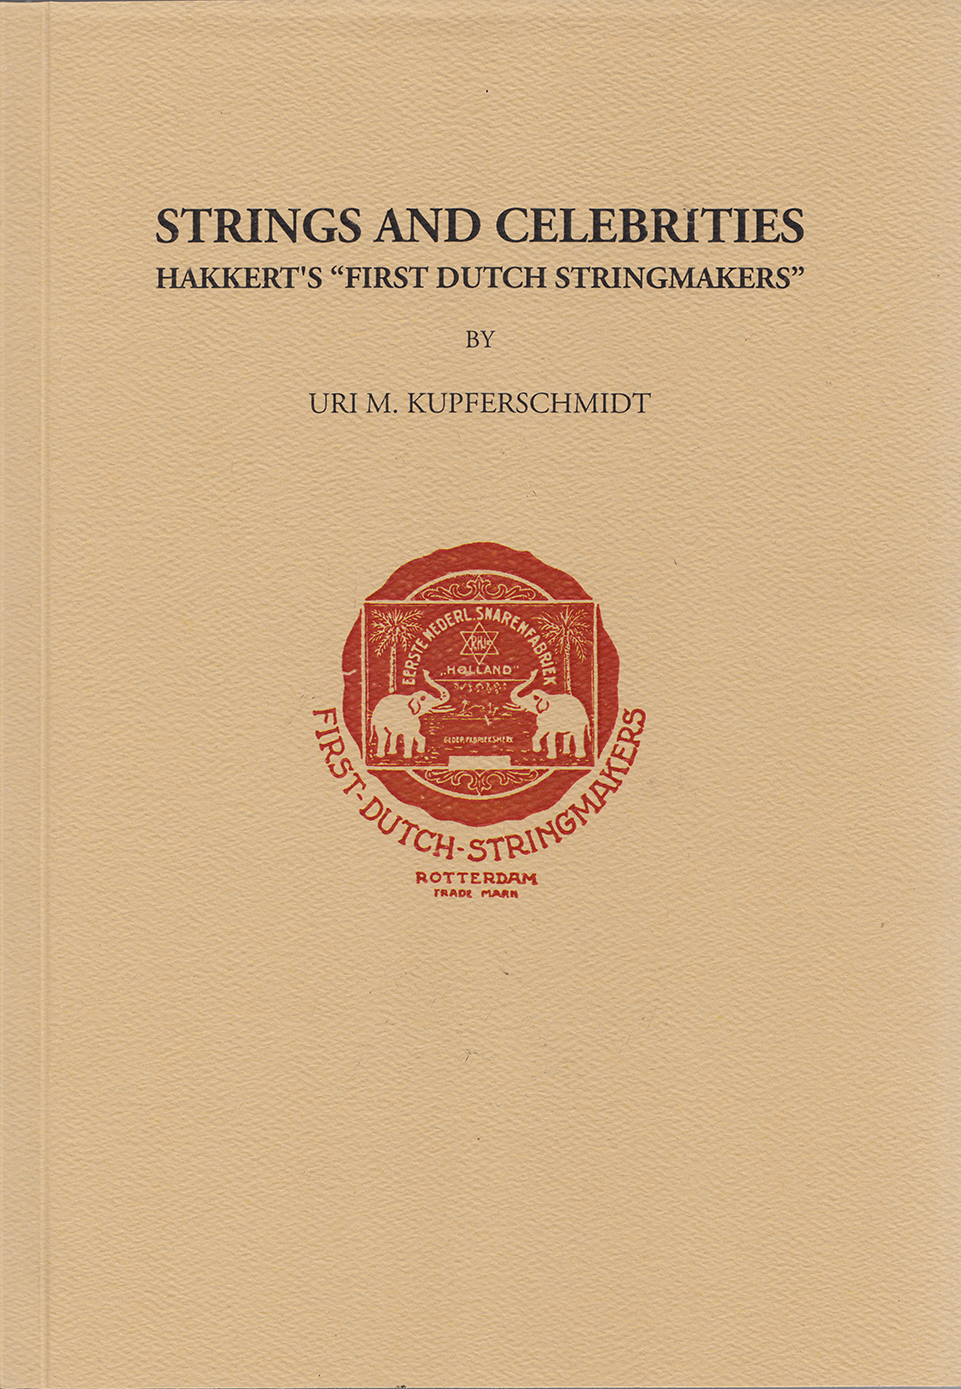 STRINGS AND CELEBRITIES